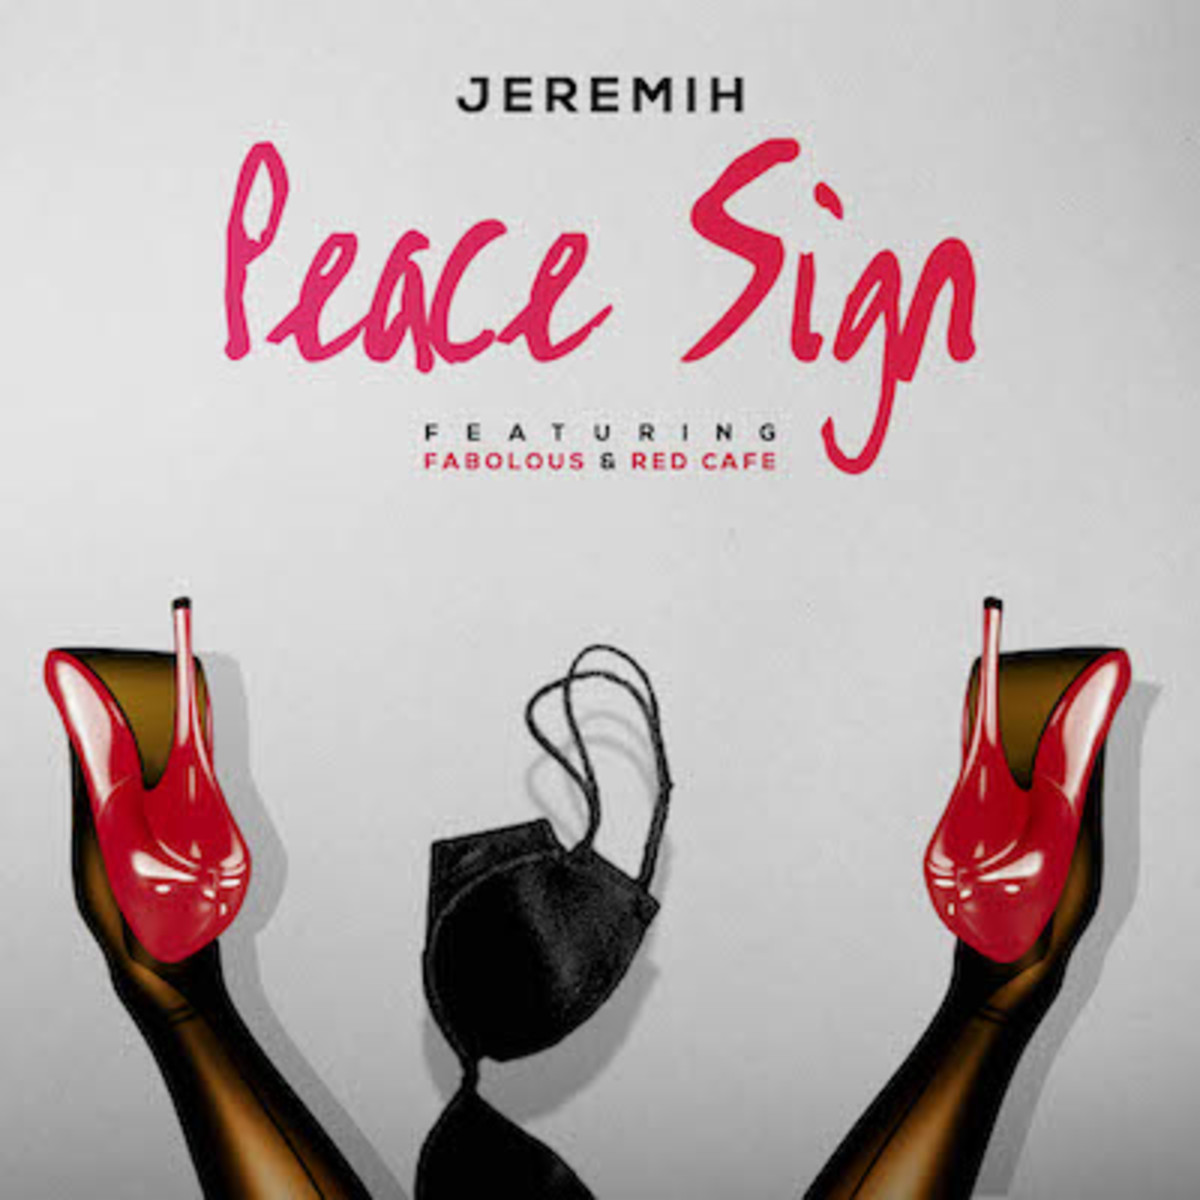 jeremih-peace-sign1.jpg